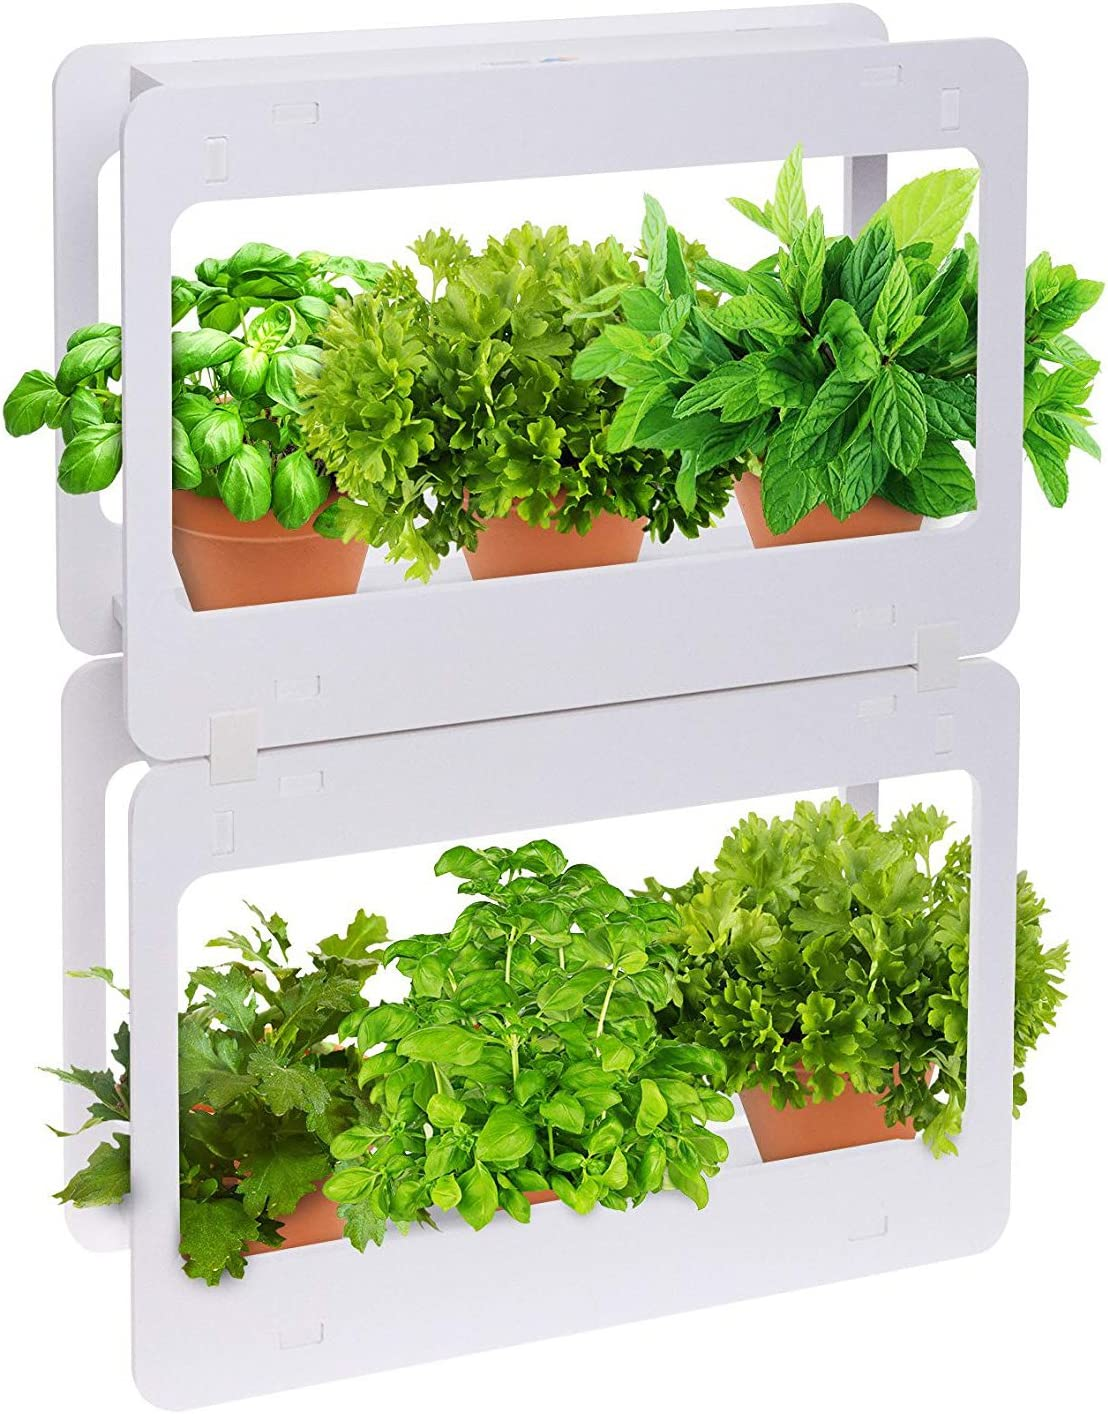 Mindful Design Stackable LED Indoor Garden Kit - Grow Herbs, Succulents & Vegetables